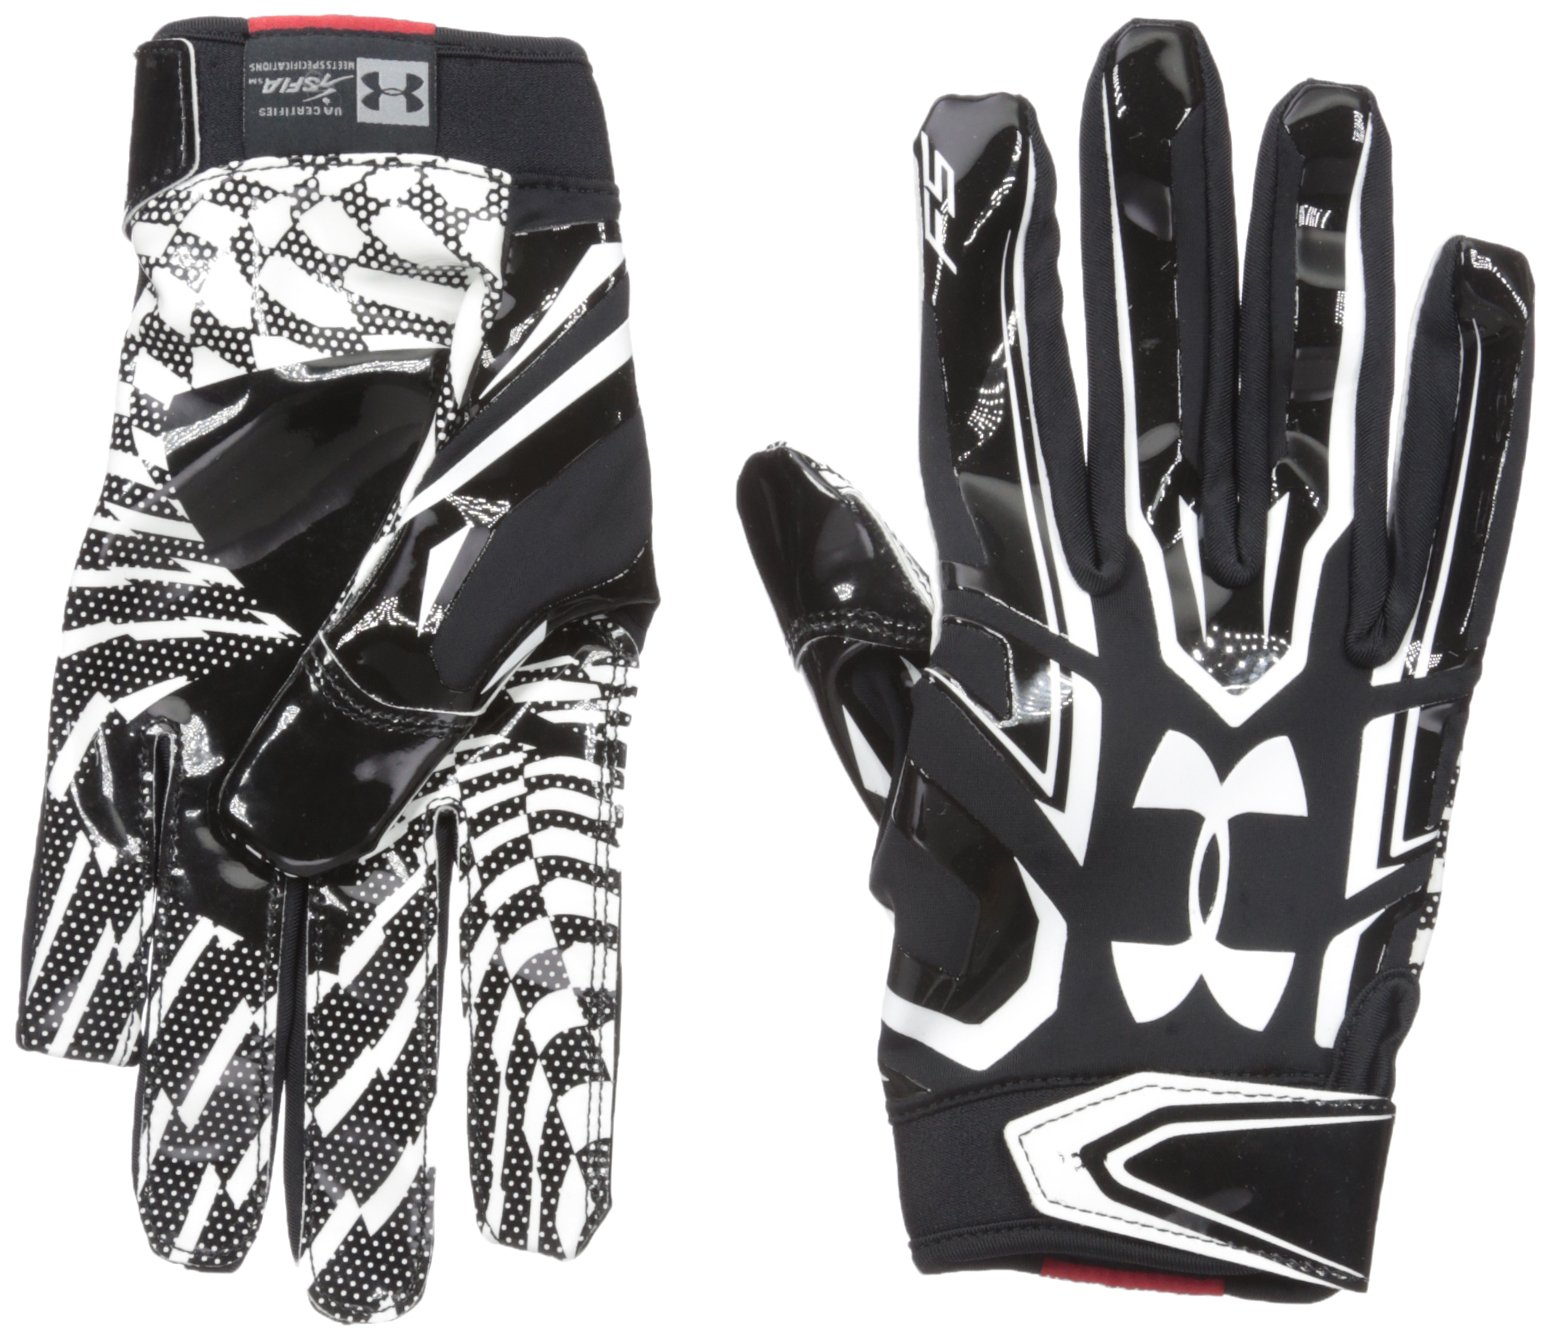 Under Armour Mens F5 Football Gloves, Black/White, Small